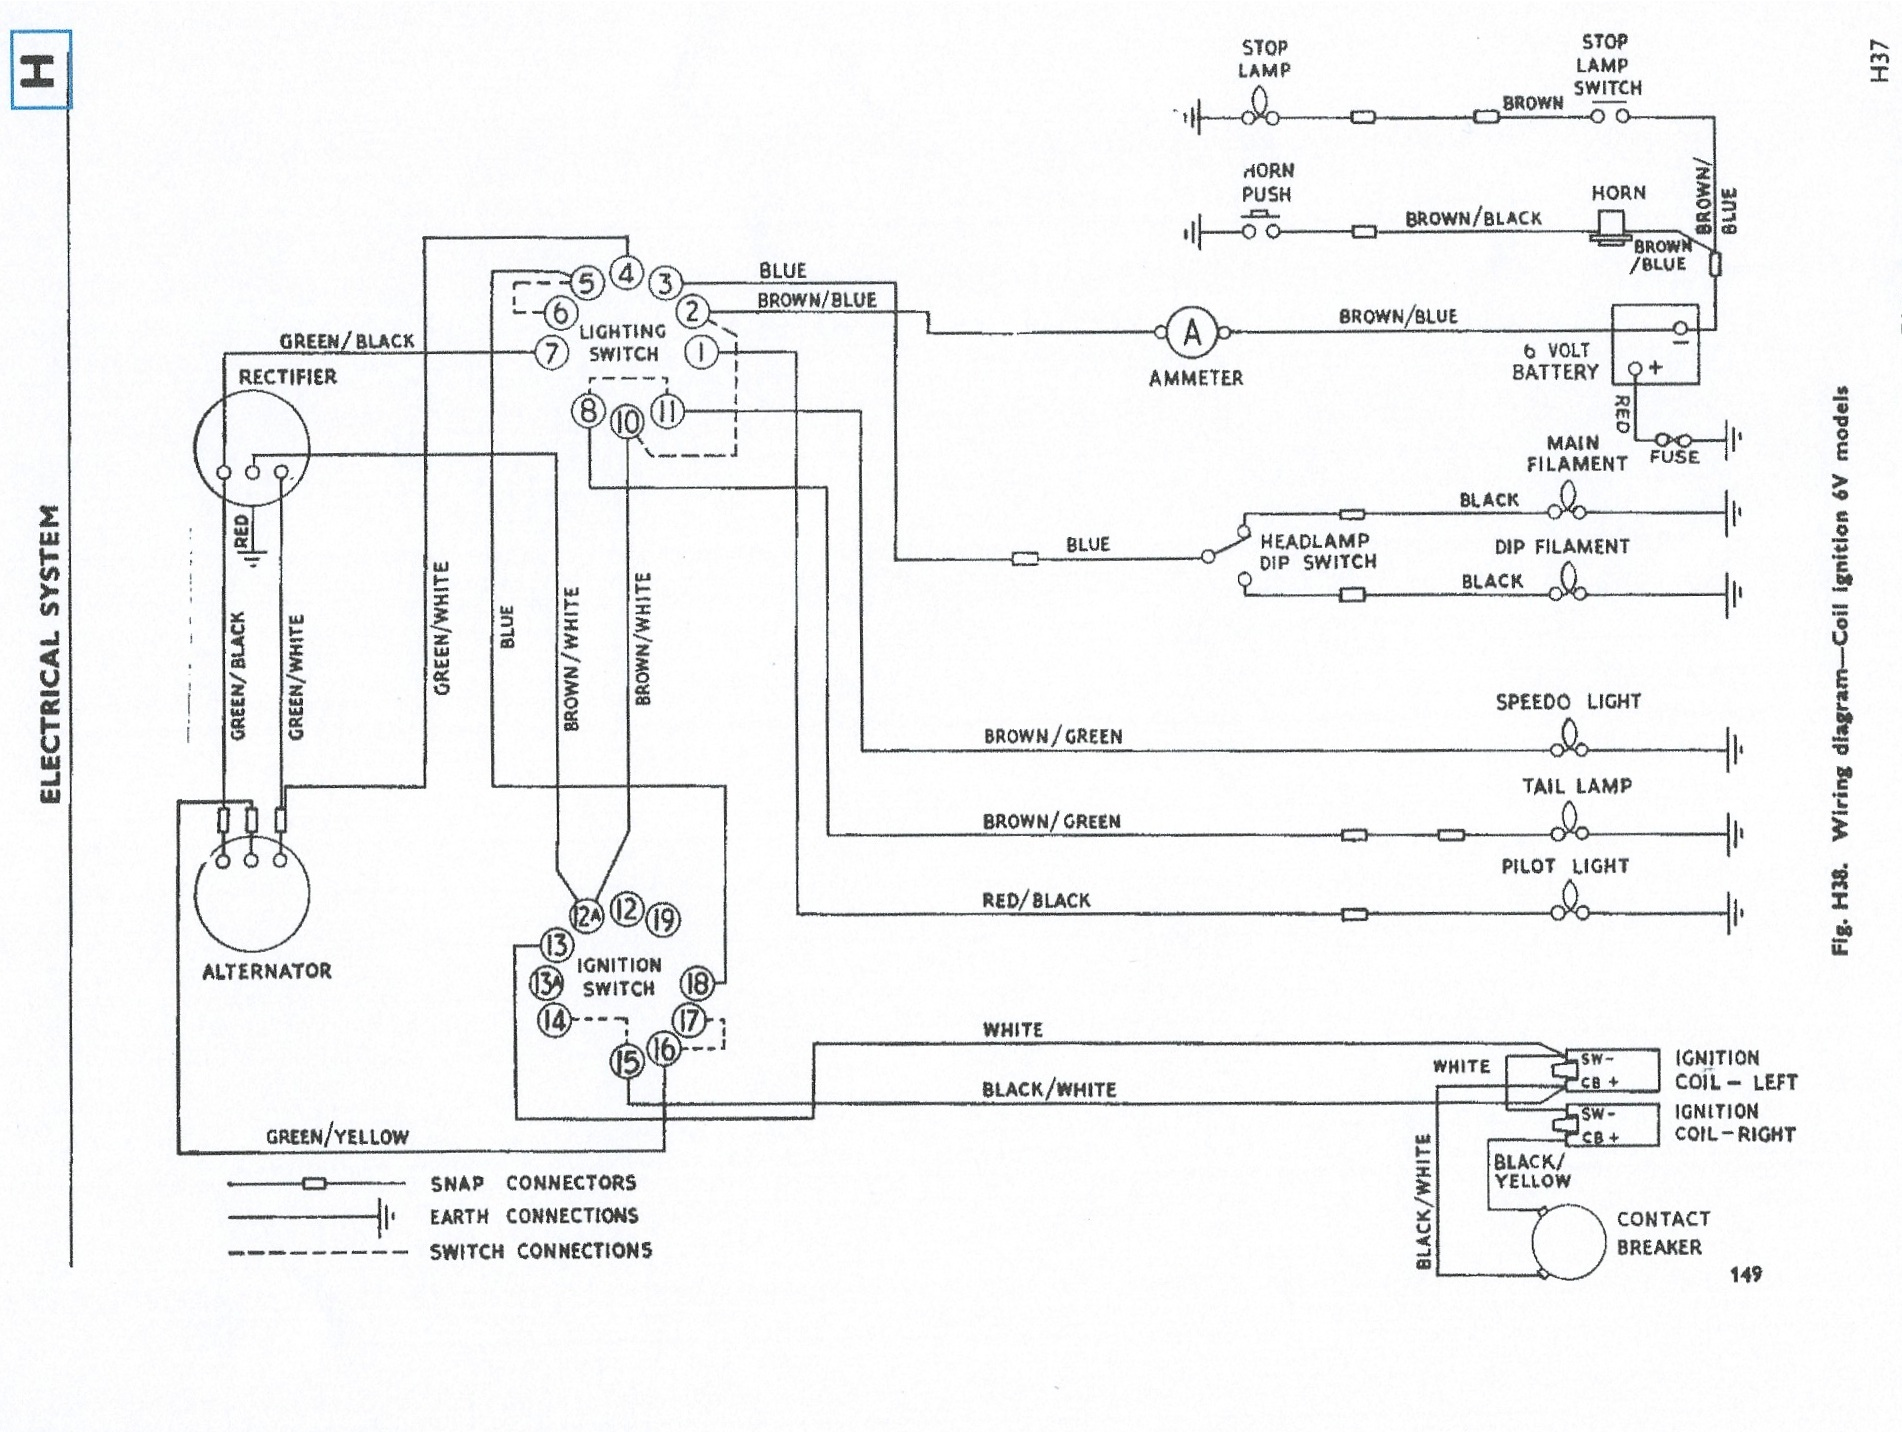 T120 Wiring Diagrams0 08 triumph wiring diagrams dolgular com Coil Wiring Diagram at alyssarenee.co